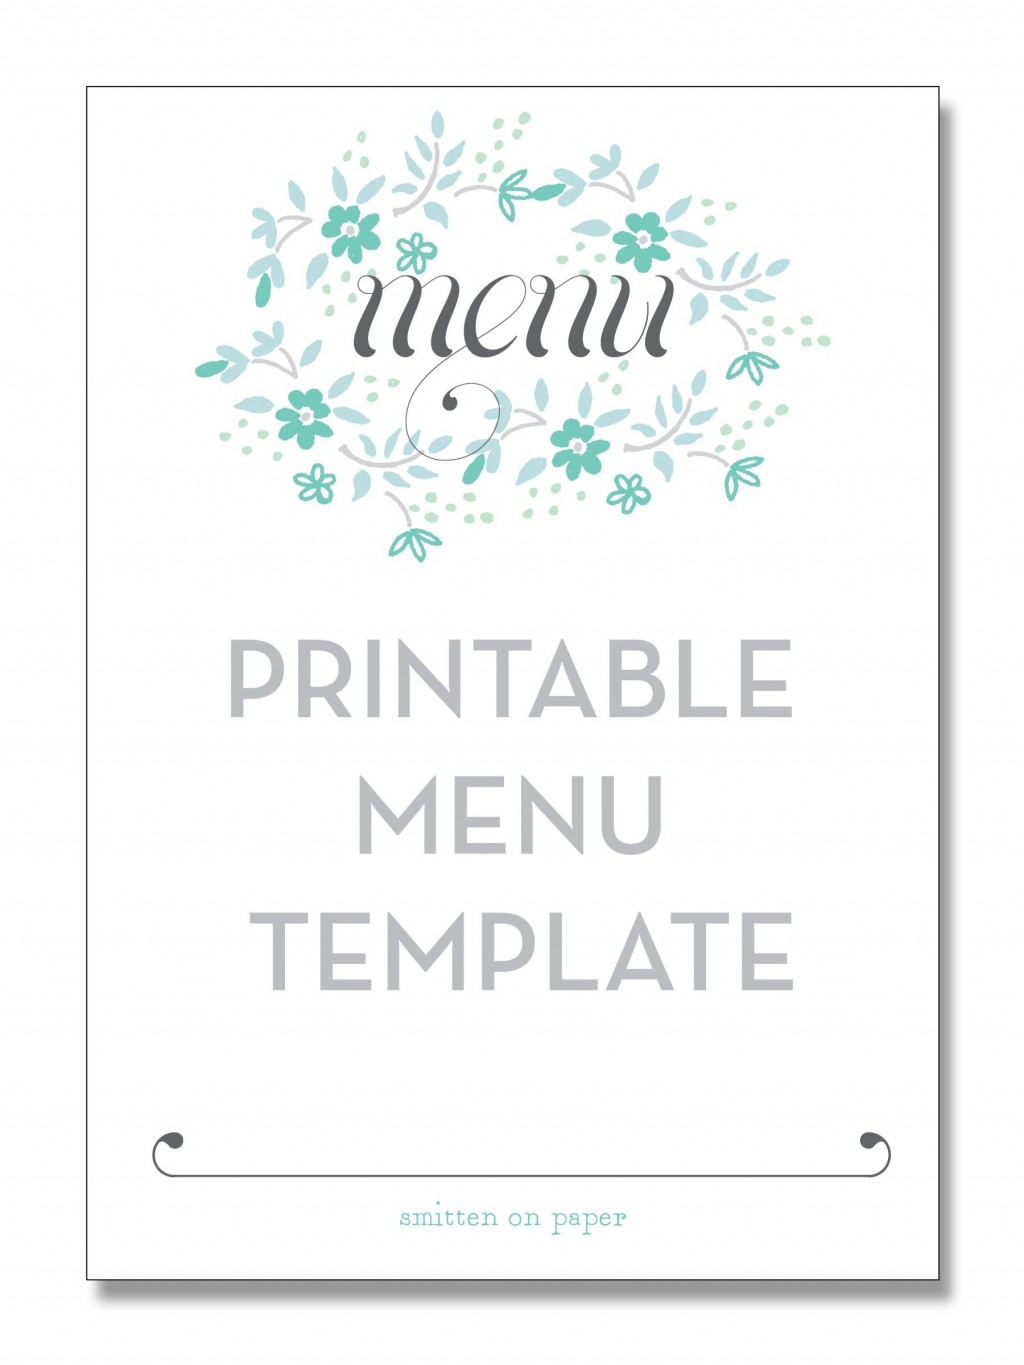 004 Phenomenal Free Printable Menu Template High Resolution  For Dinner Party FamilyLarge